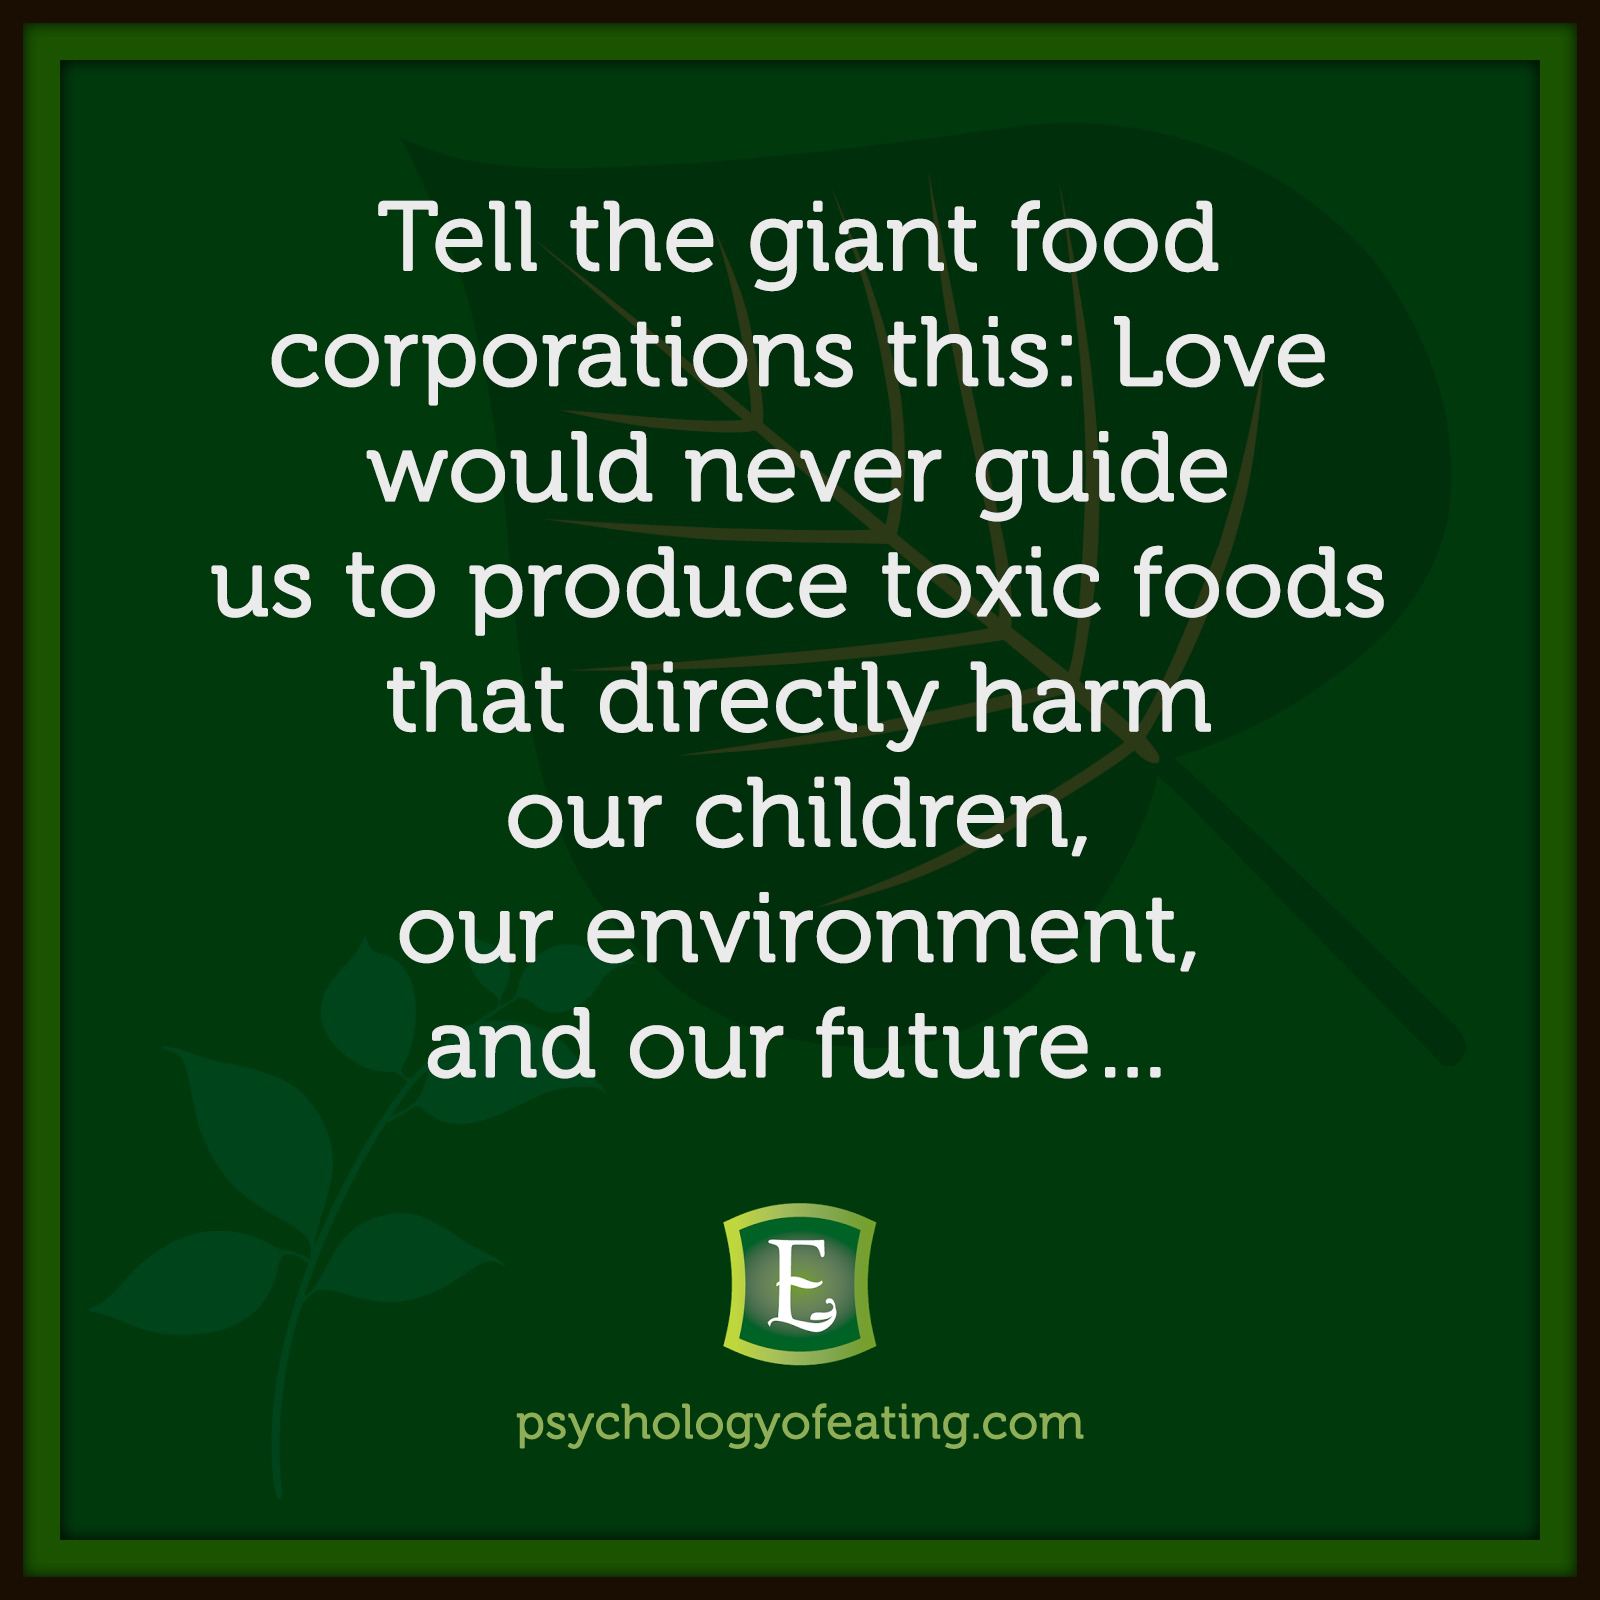 Tell the giant food corporations this: Love would never guide us to produce toxic foods that directly harm our children, our environment, and our future…   Marc David #health #nutrition #eatingpsychology #IPE